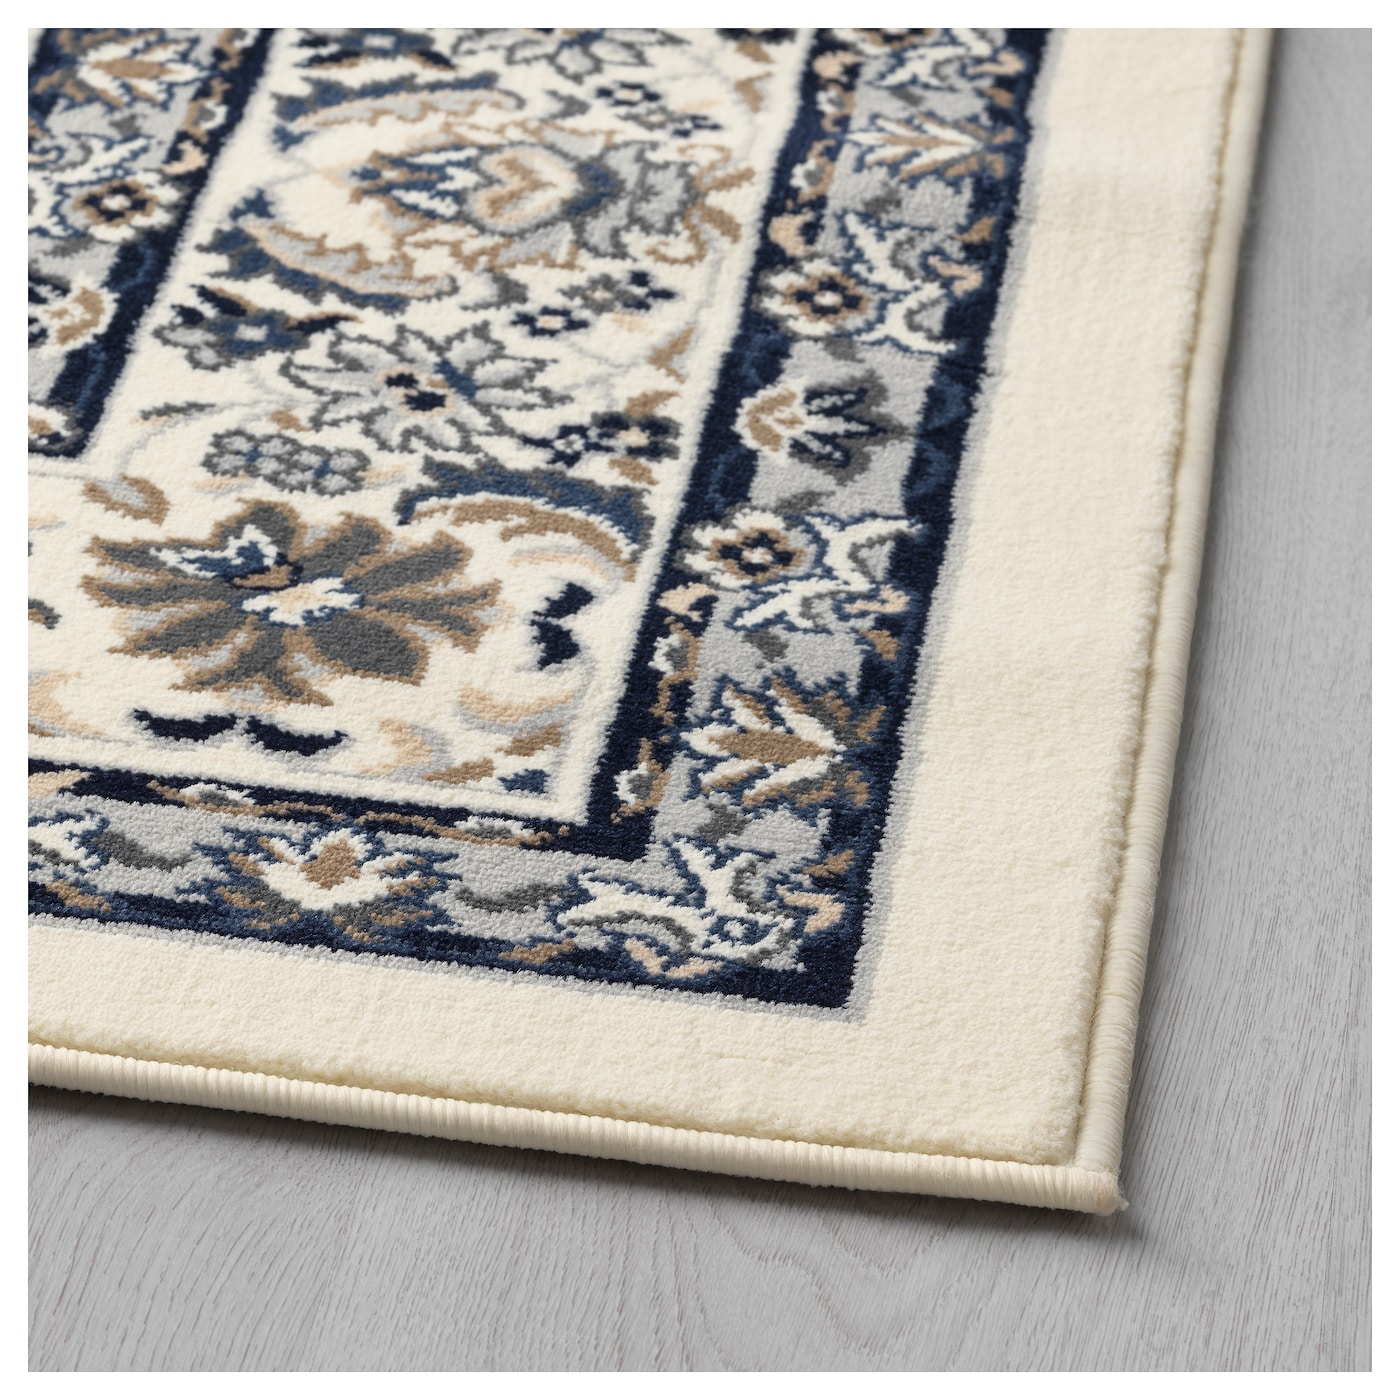 IKEA VALLÖBY rug, low pile The thick pile dampens sound and provides a soft surface to walk on.